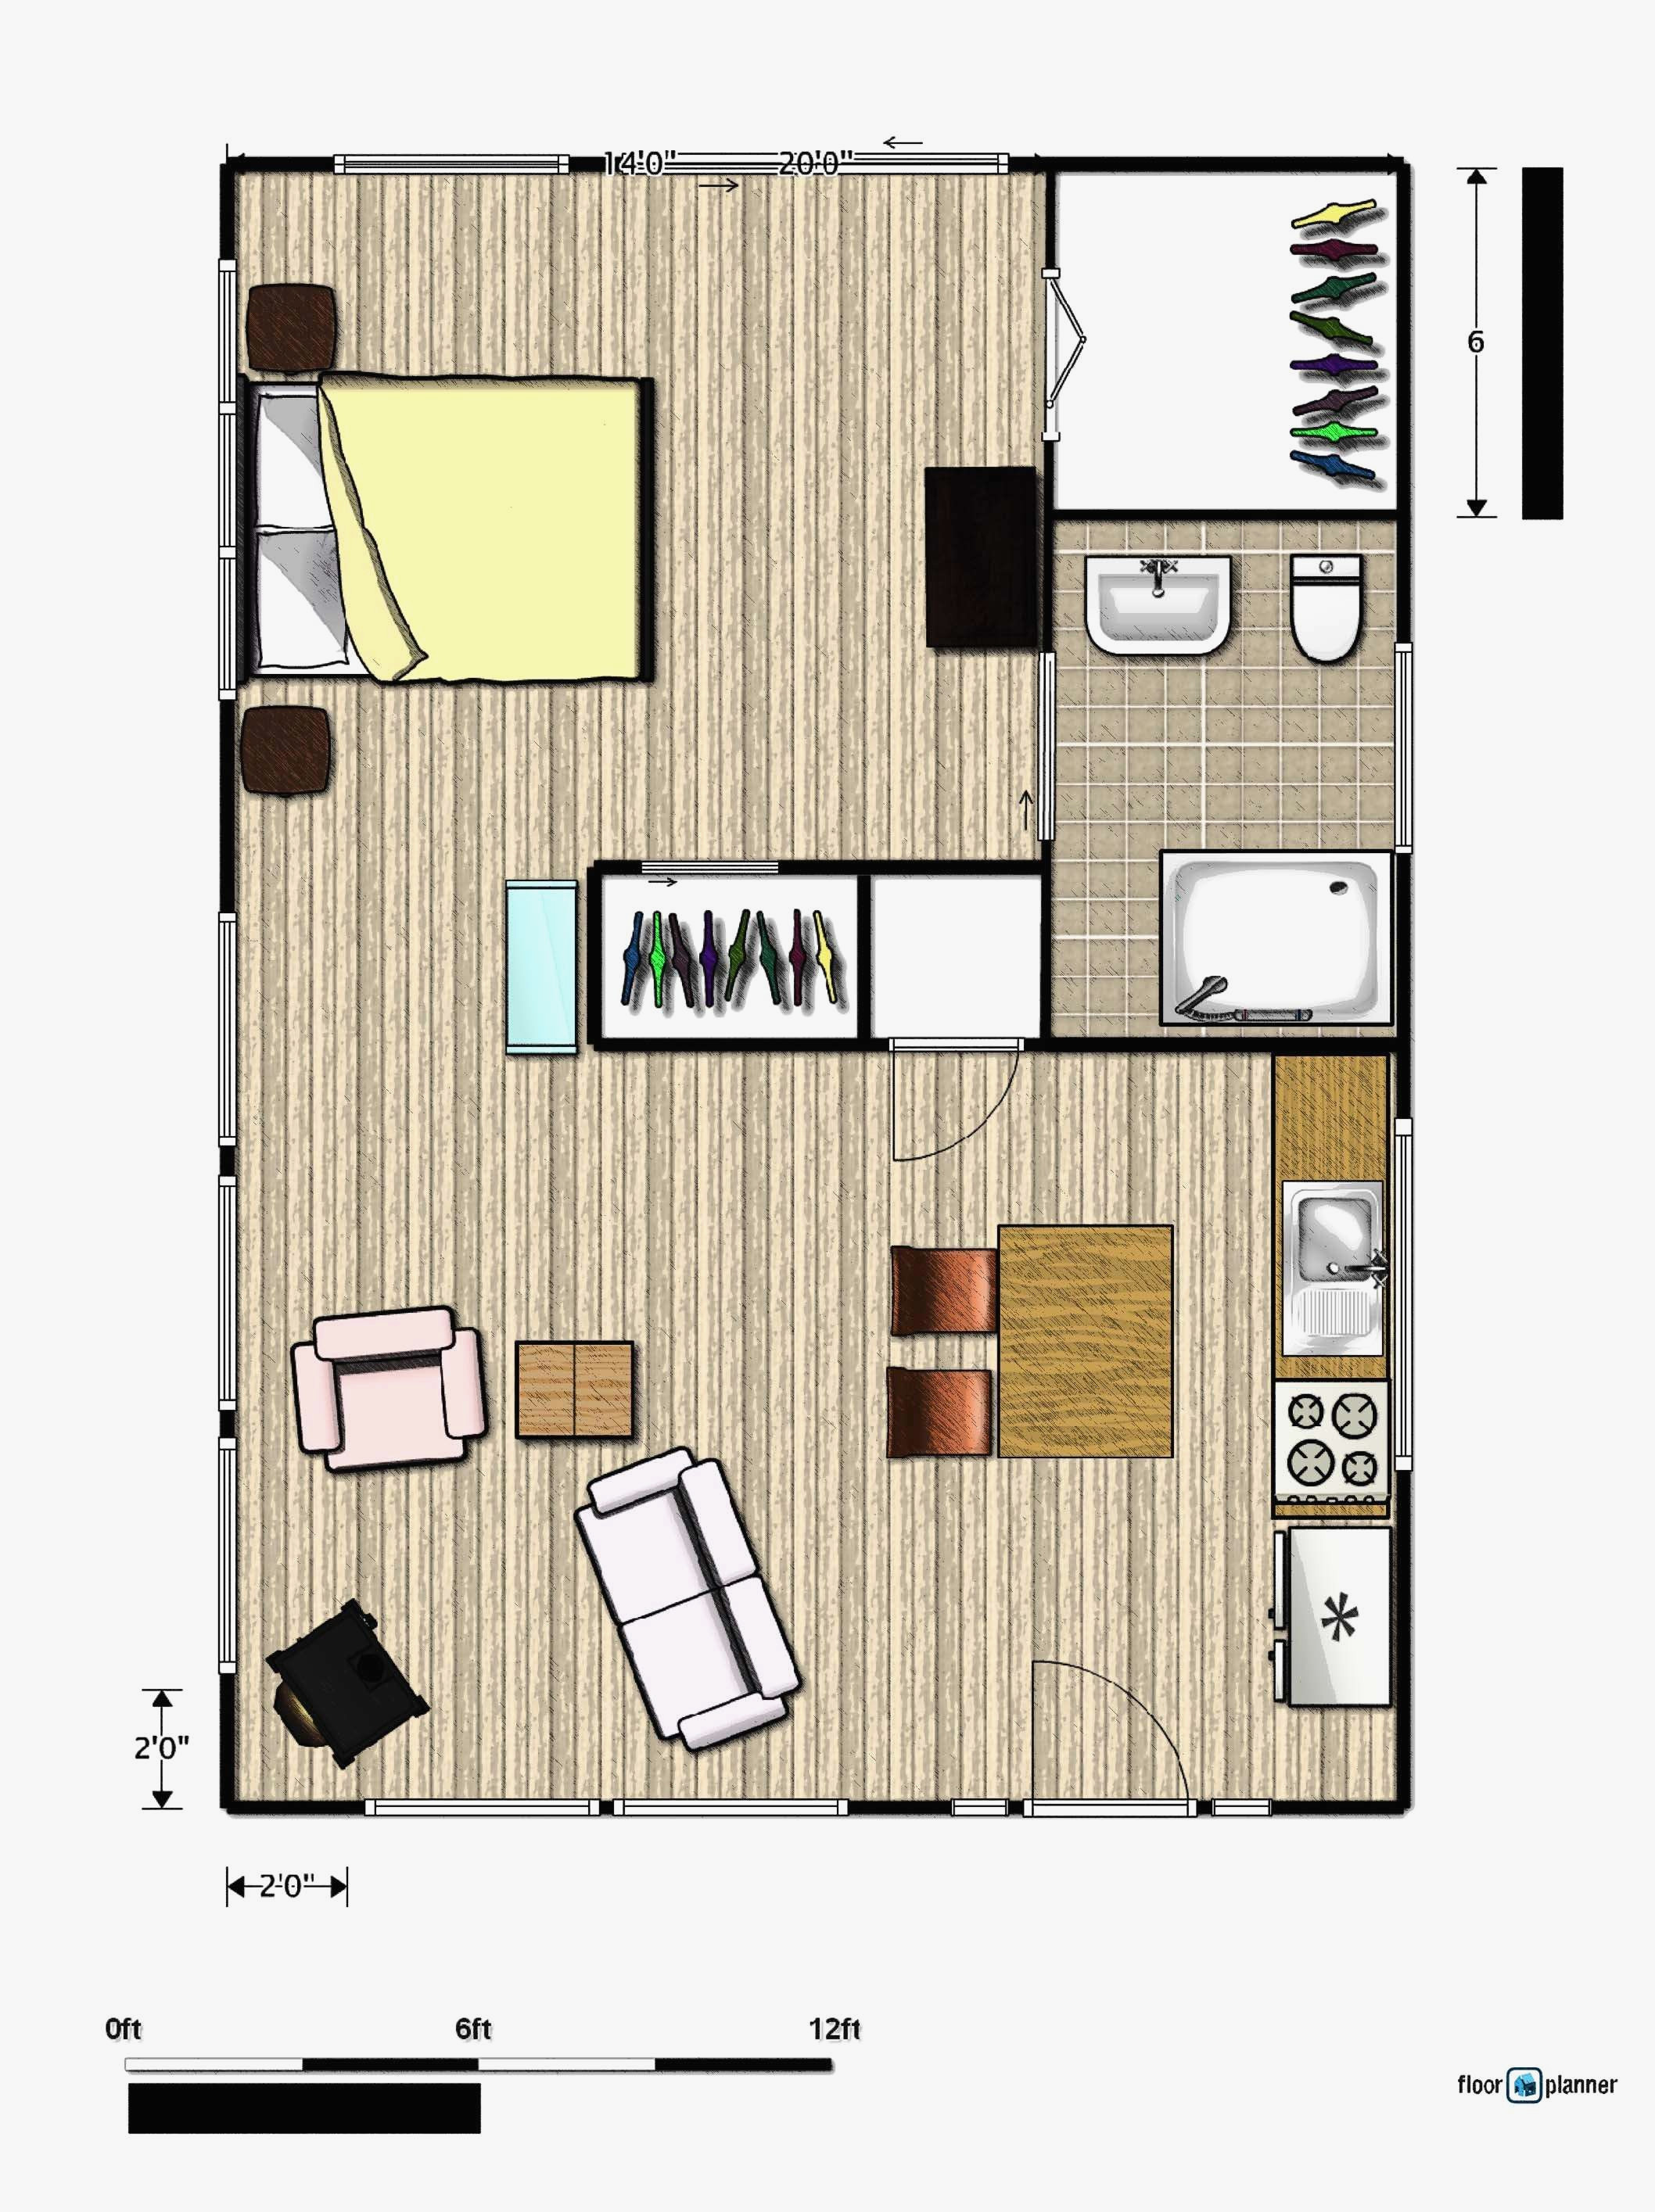 Plans for Guest House Elegant 60 Fresh Guest House Plans 500 Square Feet Gallery